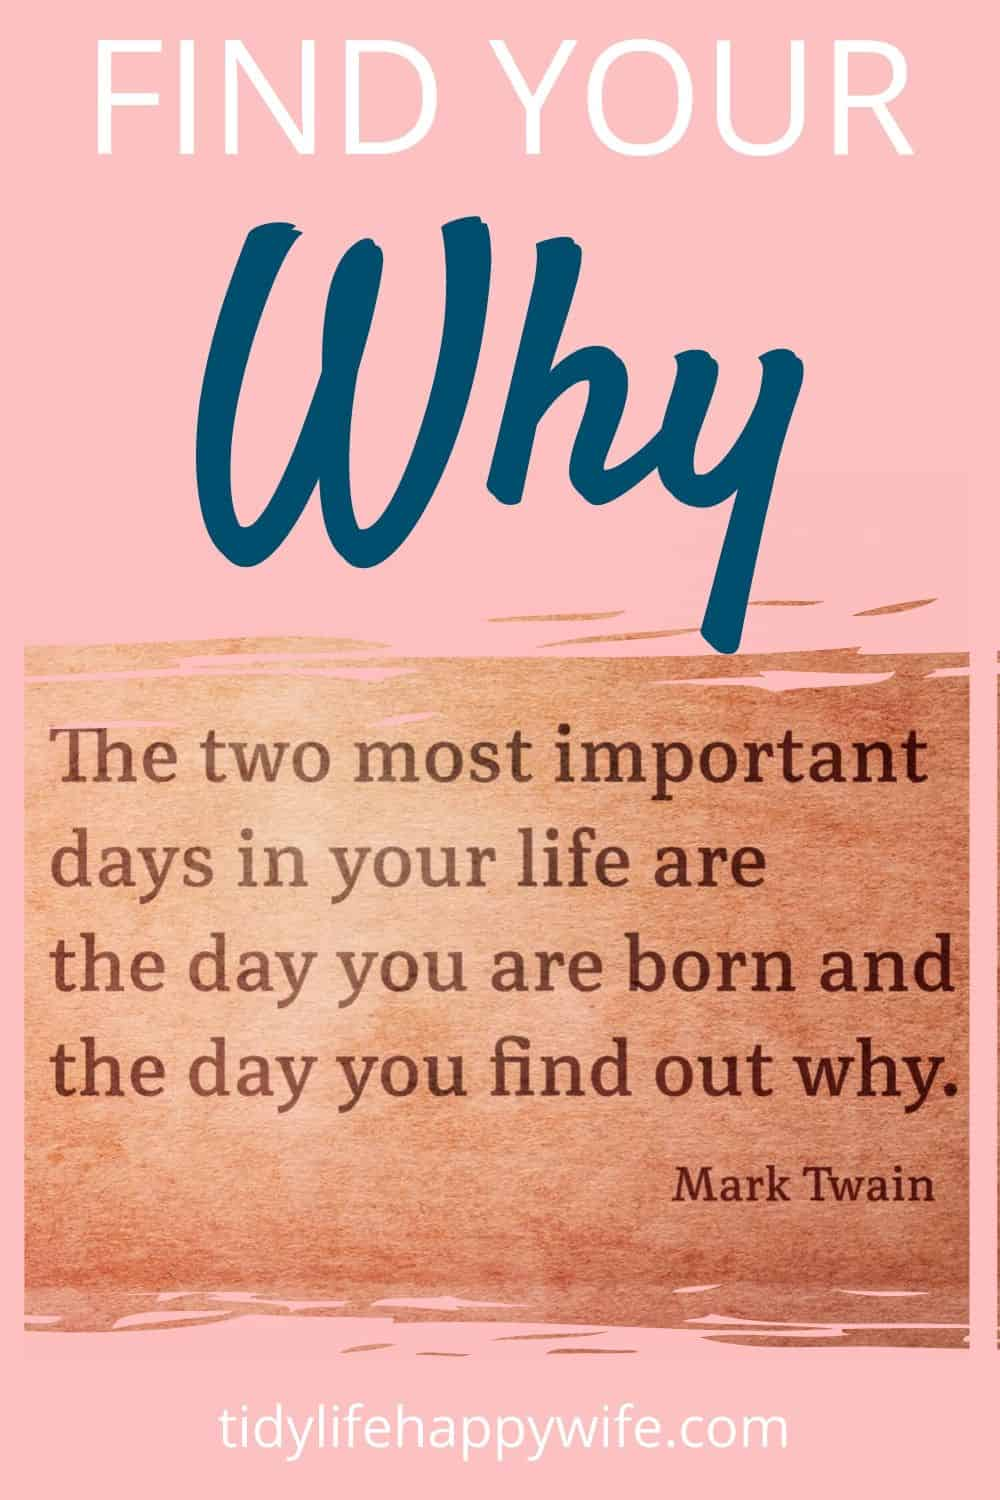 Find Your Why and Mark Twain quote.'The two most important days in your life are they day you are born and the day you find out why'.